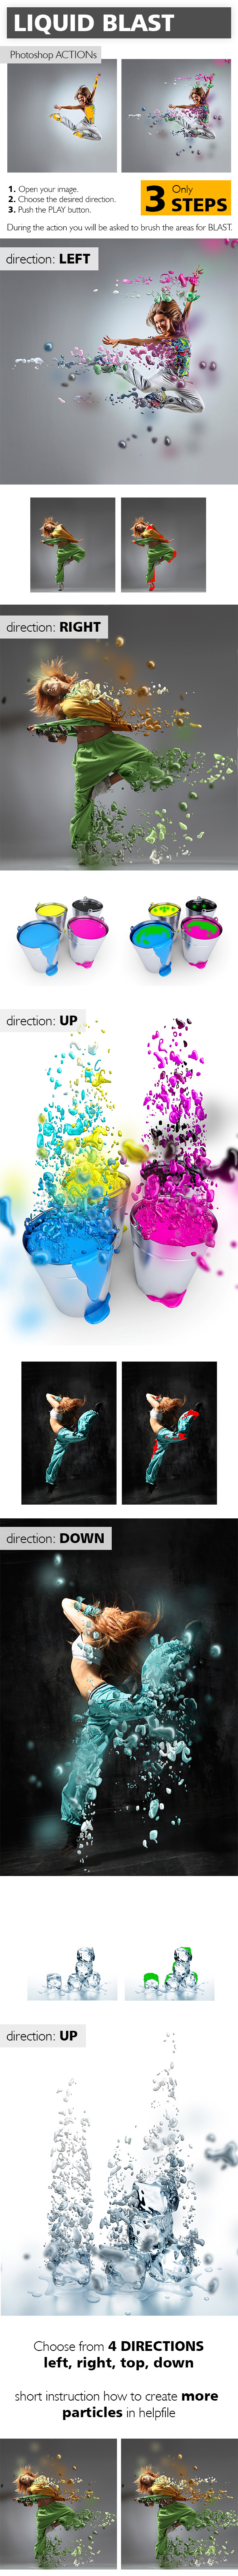 GraphicRiver Liquid Blast Photoshop Action 10267688